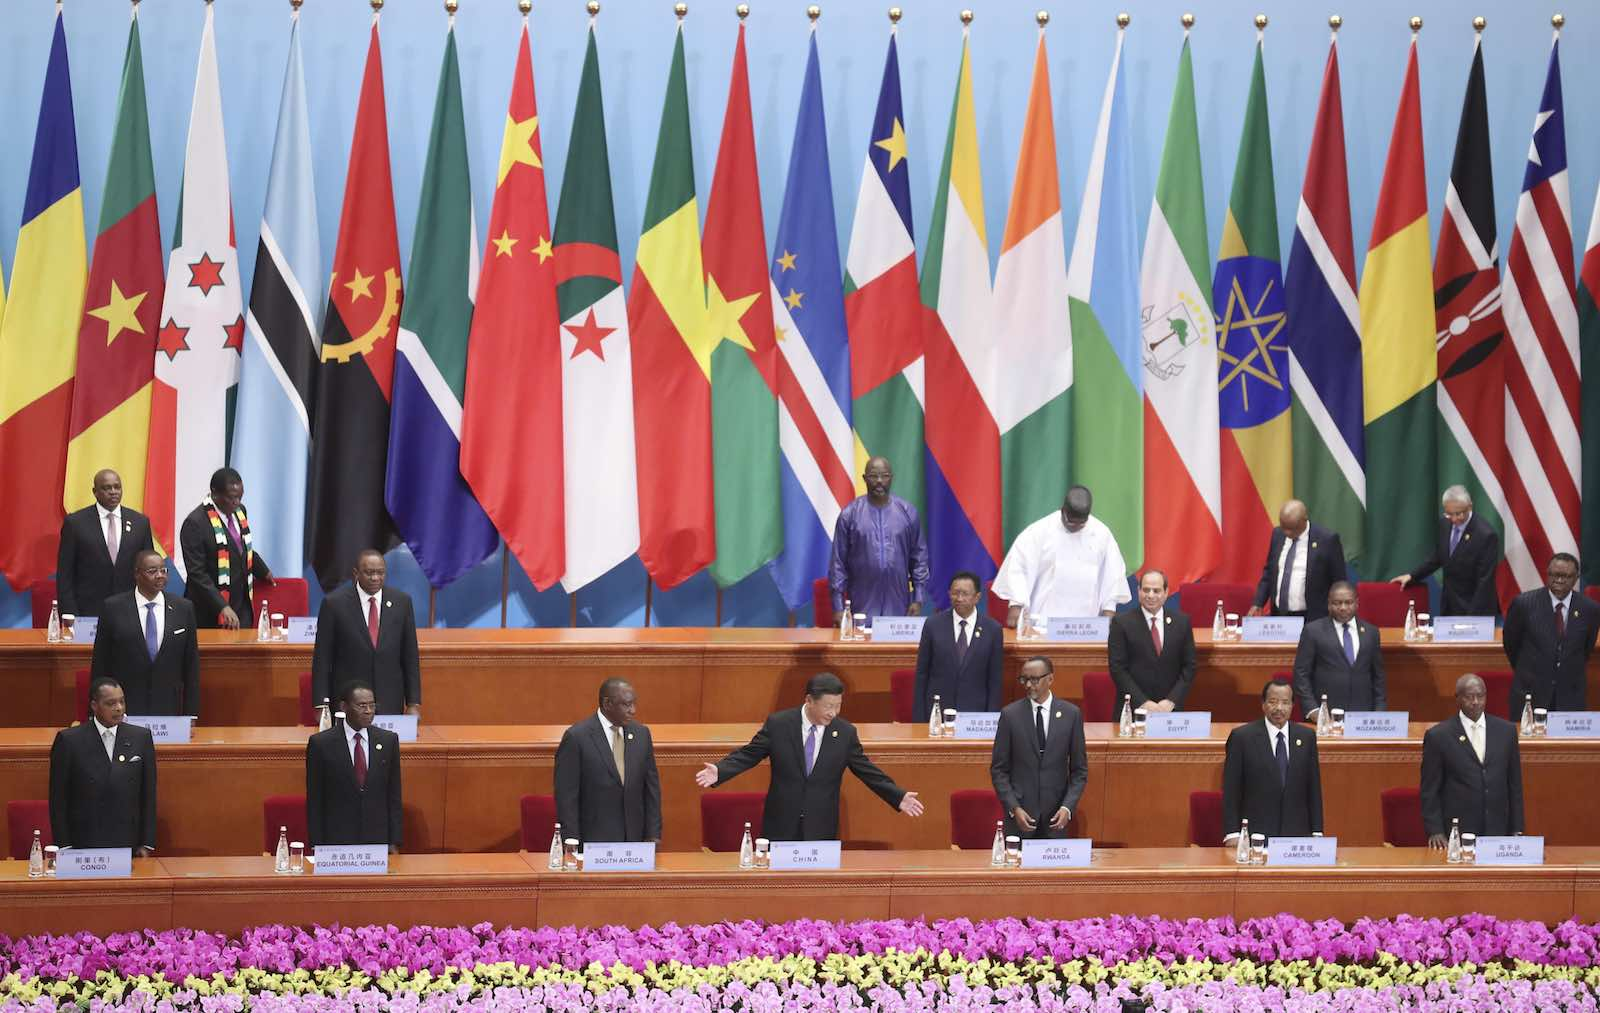 China's President Xi Jinping hosts the Forum on China-Africa Cooperation on 3 September in Beijing, China (Photo: Sheng Jiapeng via Getty)